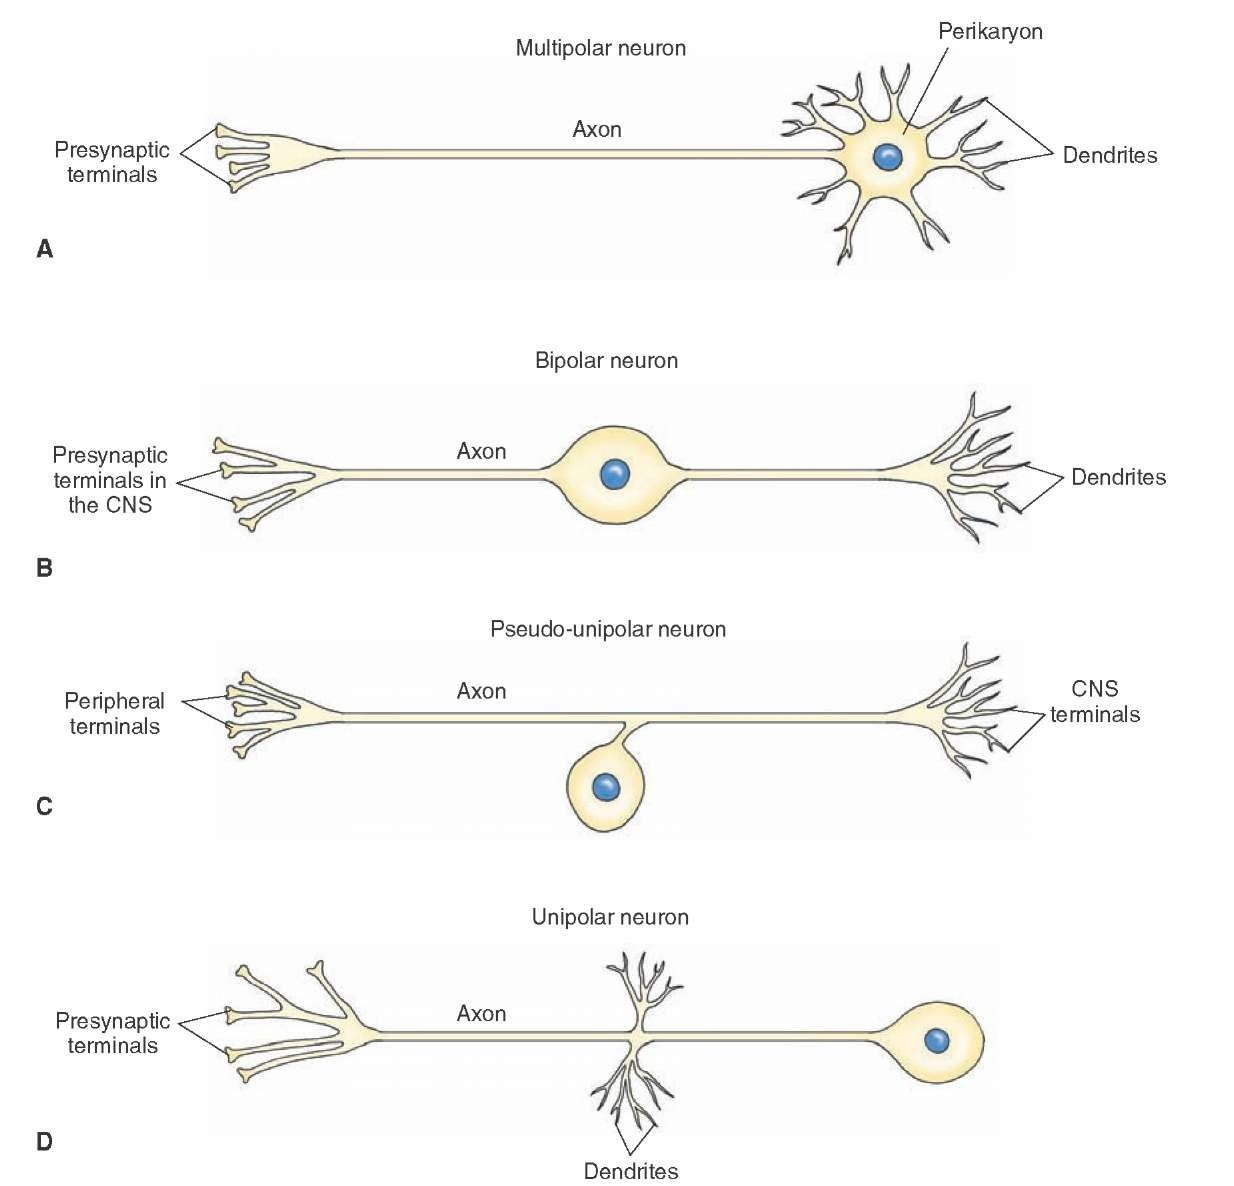 small resolution of different types of neurons a multipolar neuron b bipolar neuron c pseudo unipolar neuron d unipolar neuron cns central nervous system